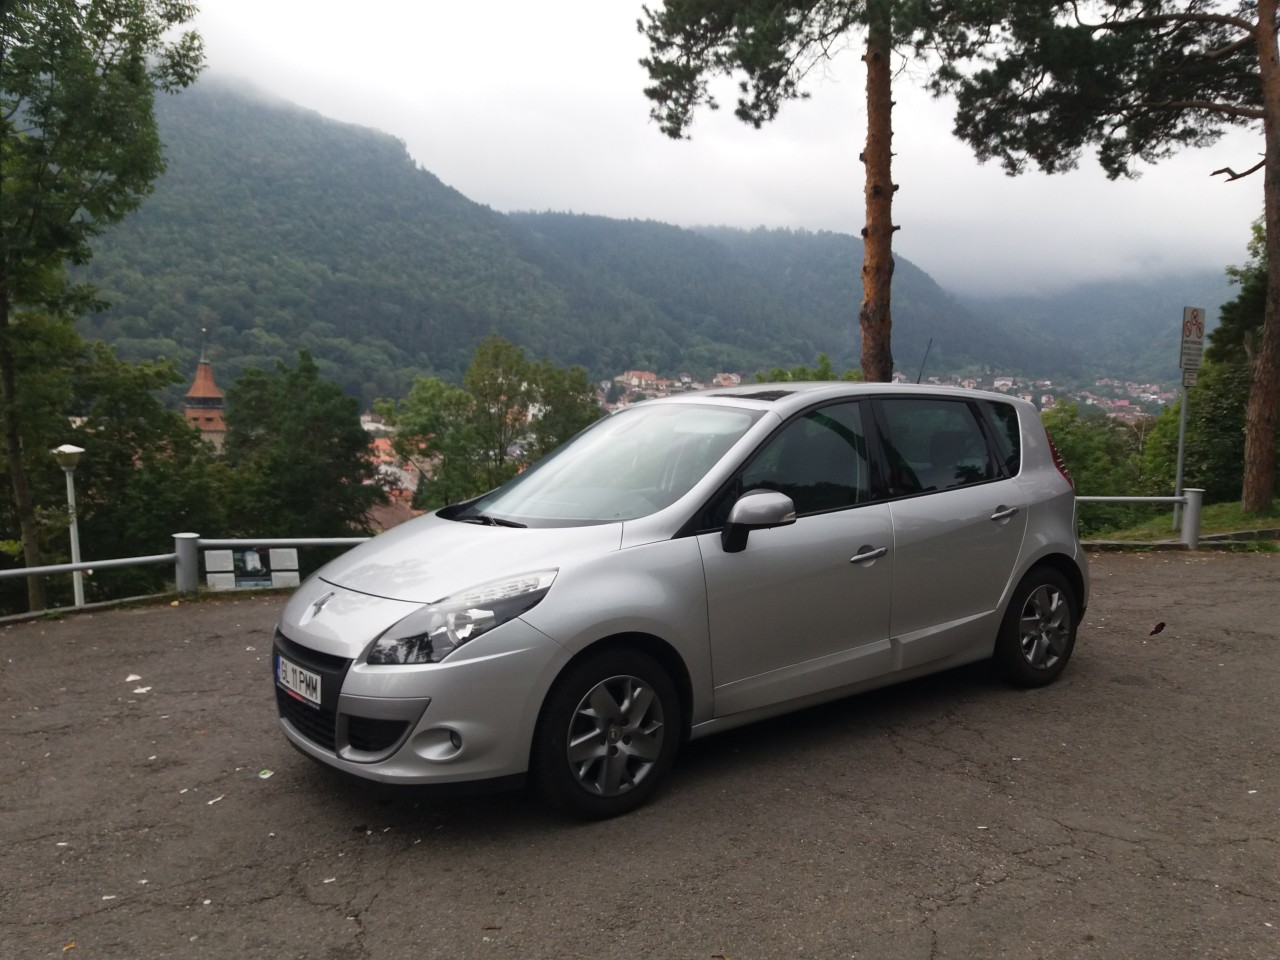 Renault Scenic 1.6 DCI 130 CP 2011